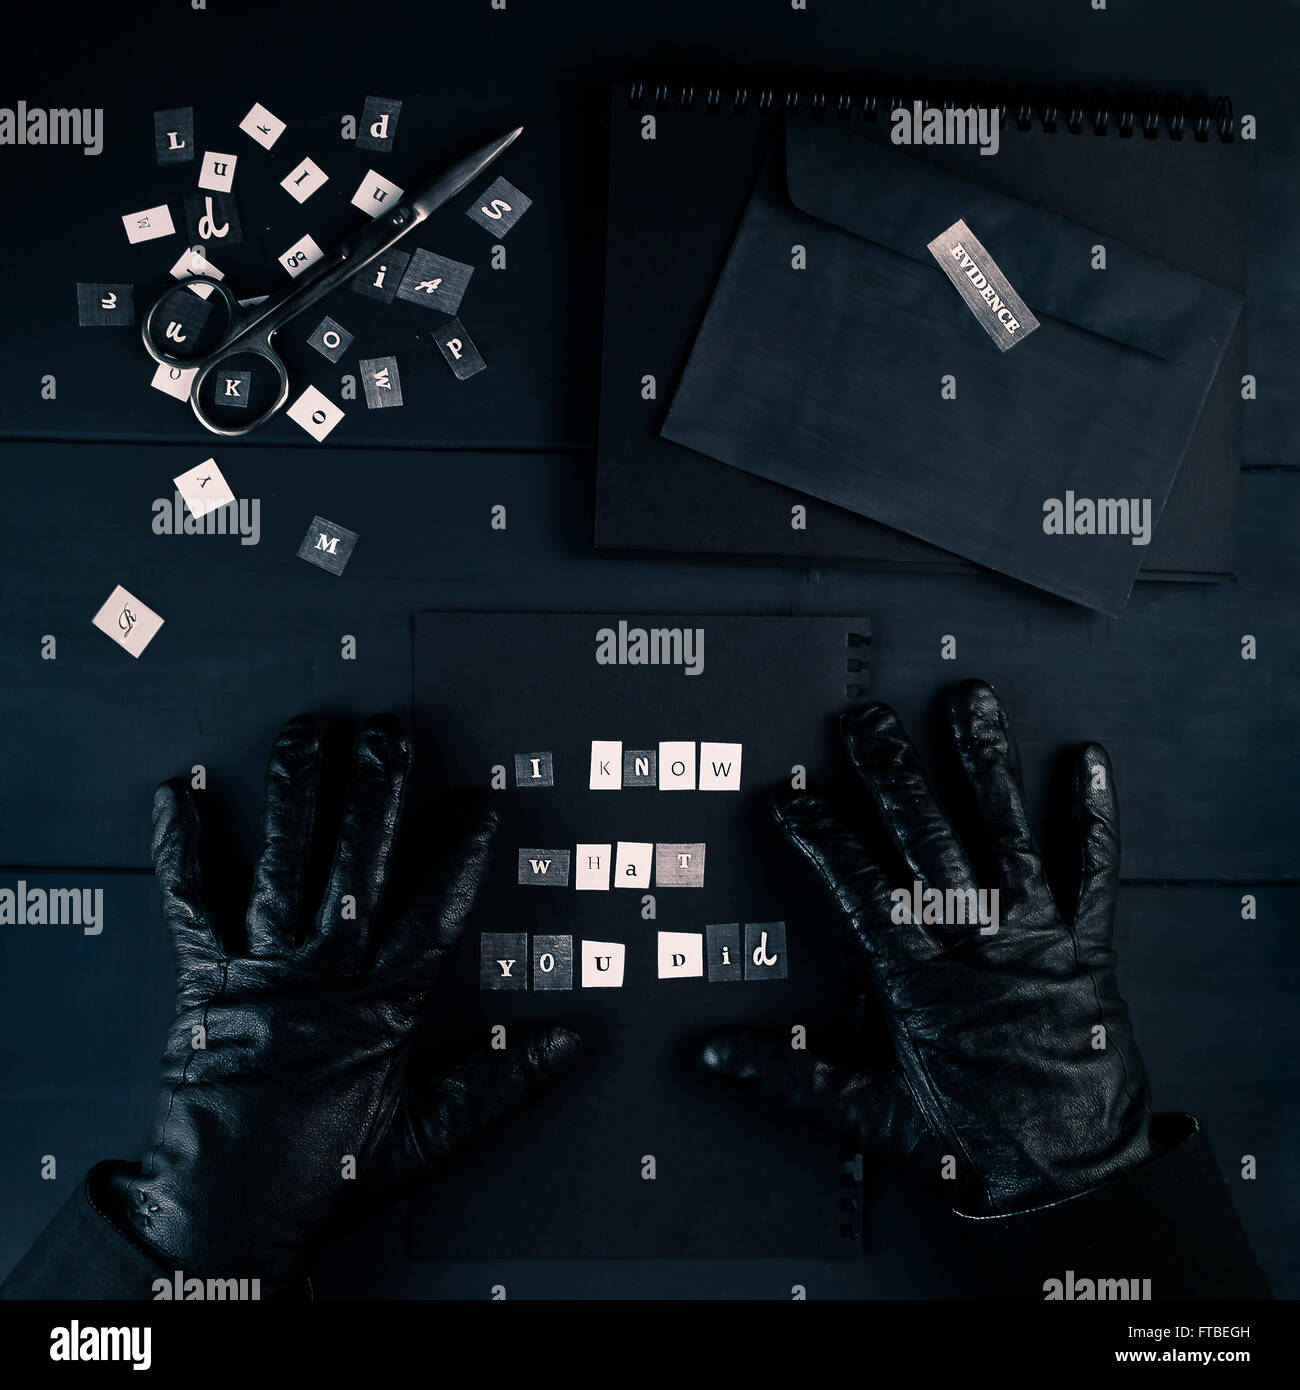 Blackmailer - Stock Image